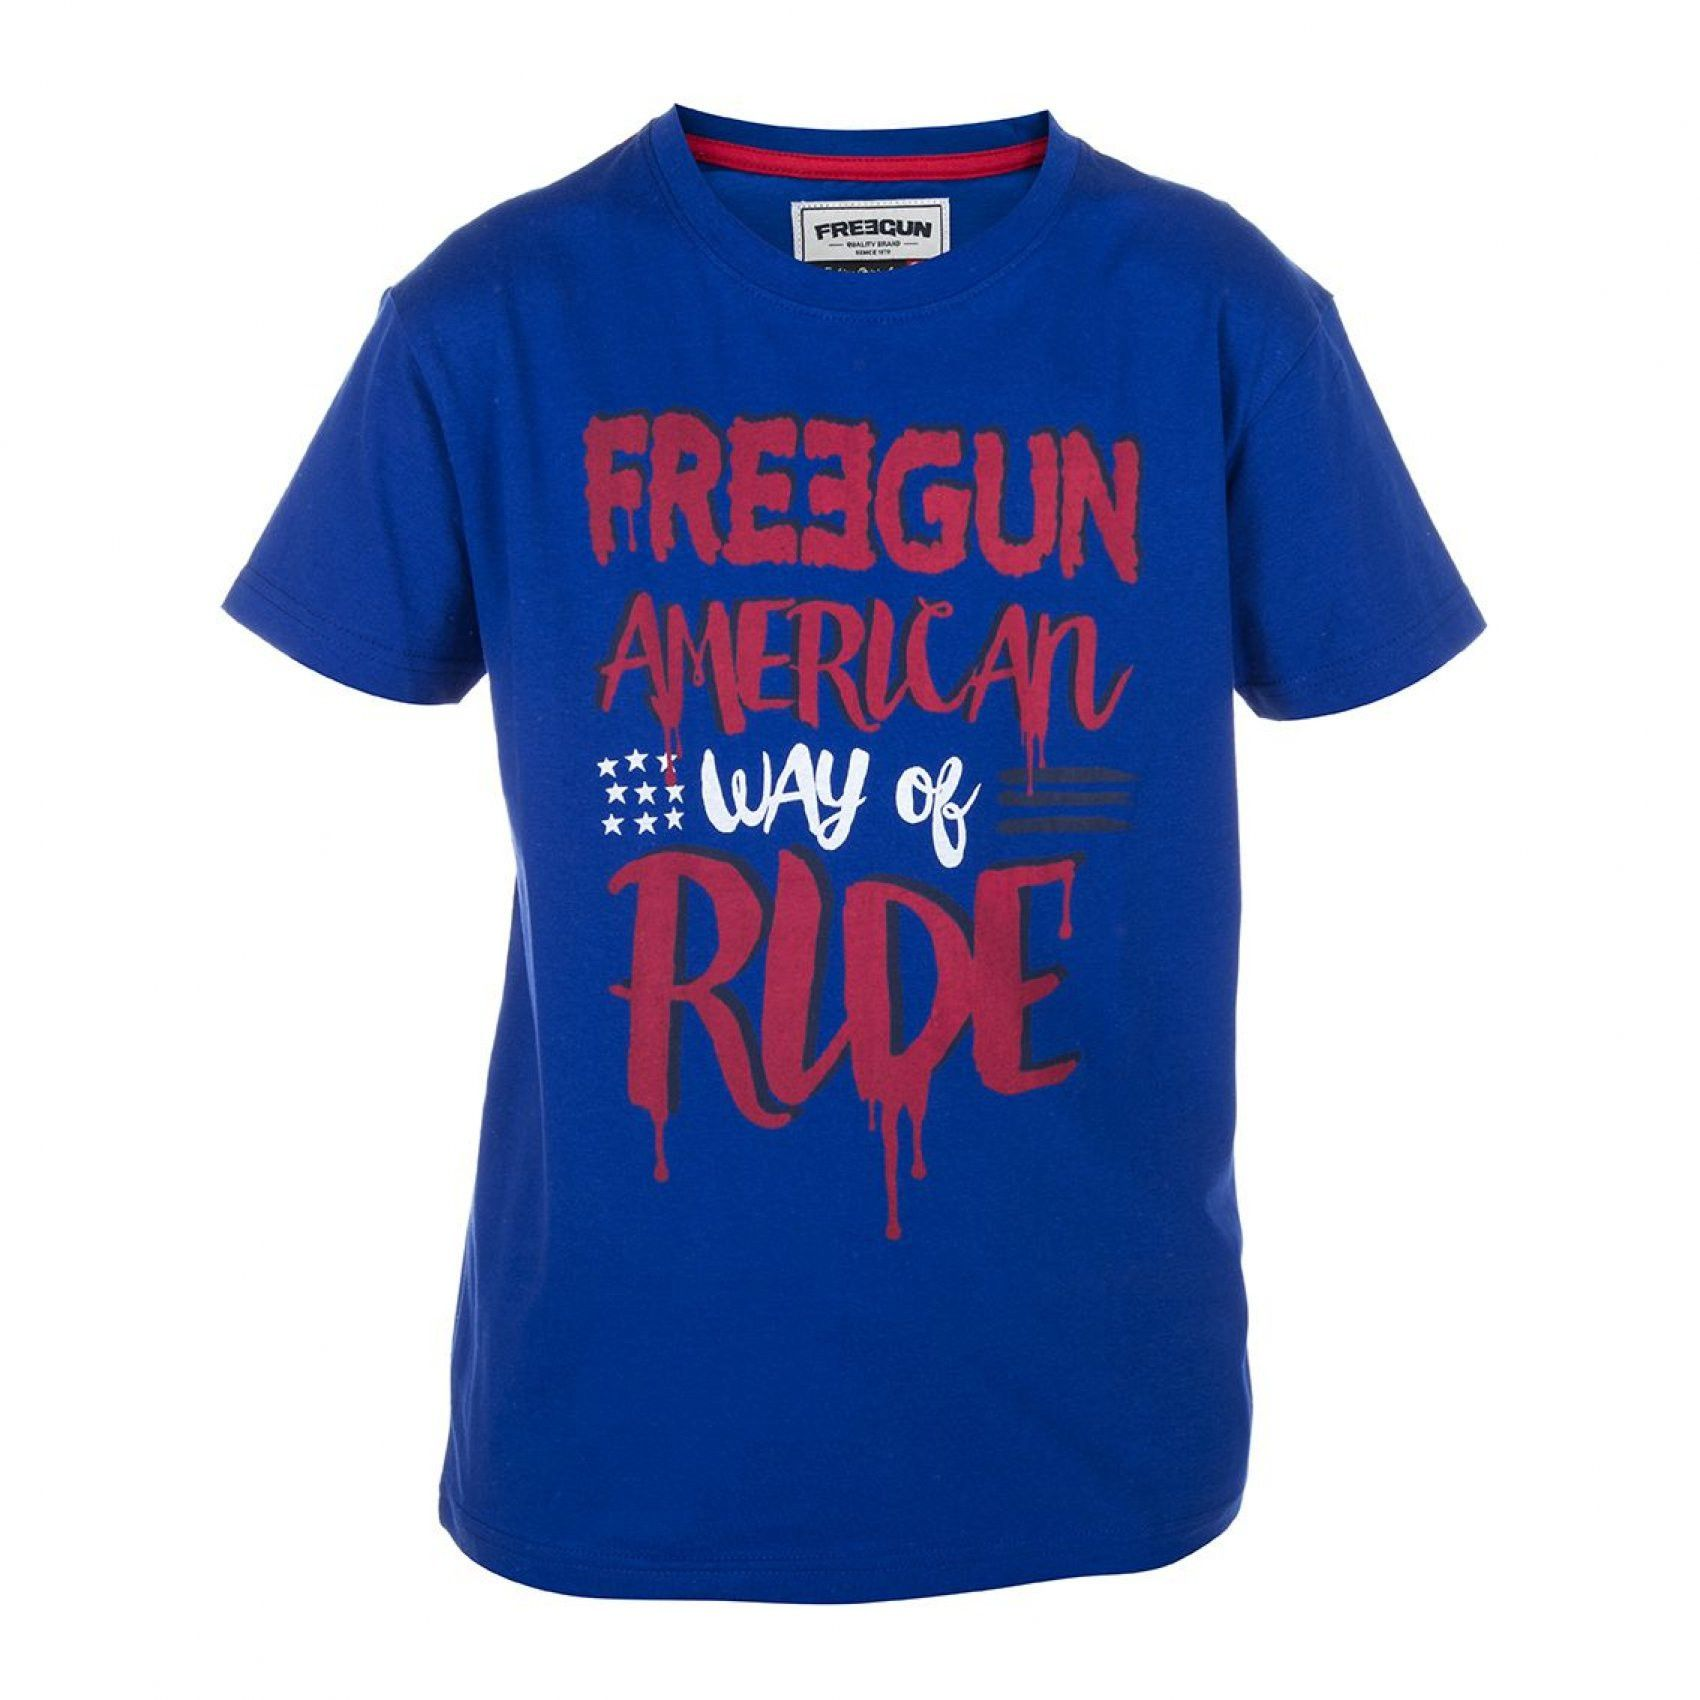 T-shirt garçon freegun ride (photo)